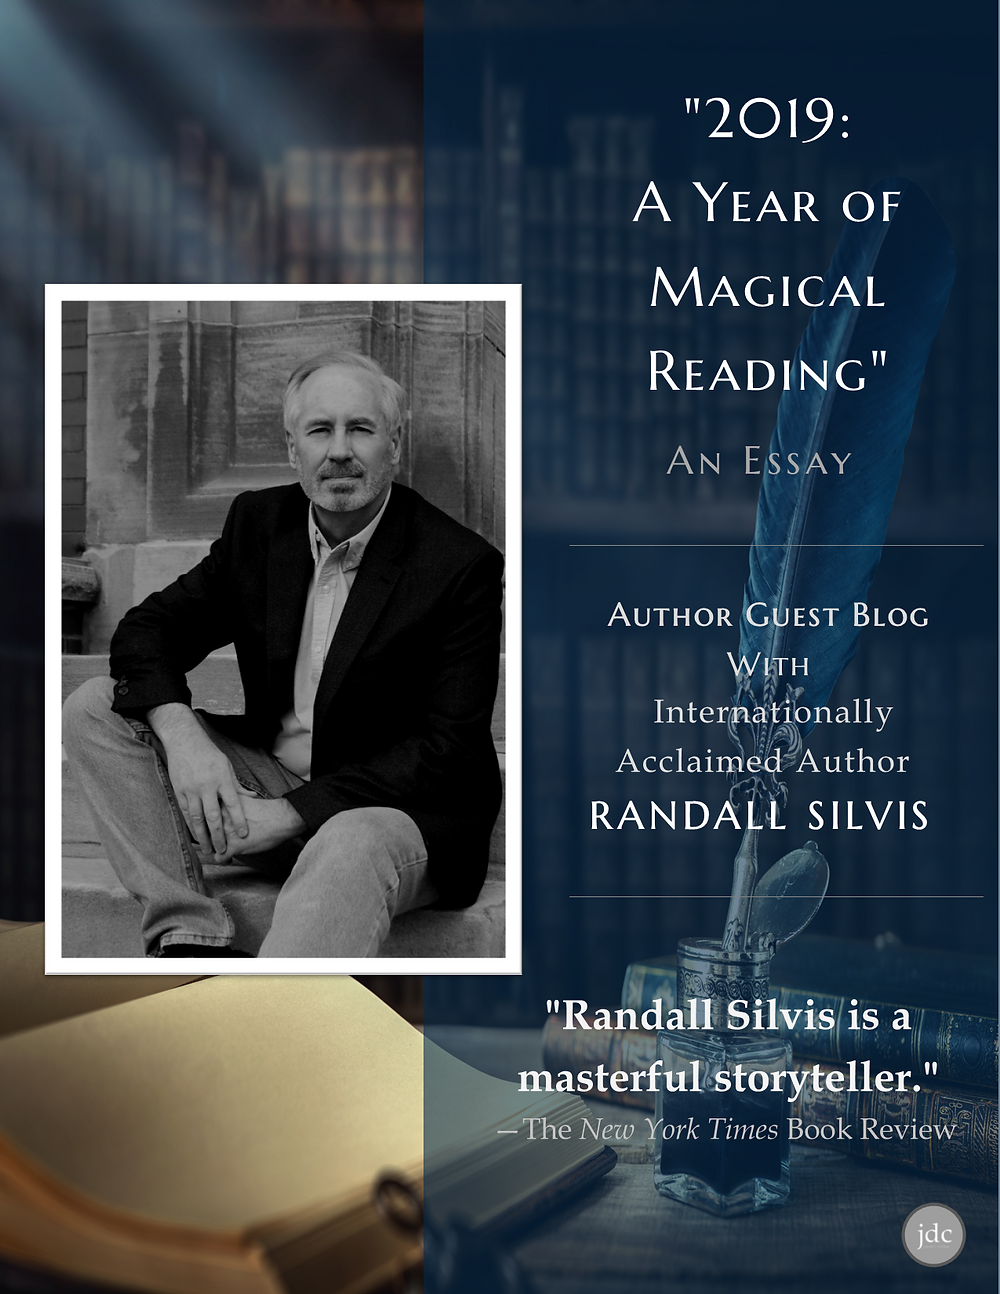 An Essay by Acclaimed Author Randall Silvis